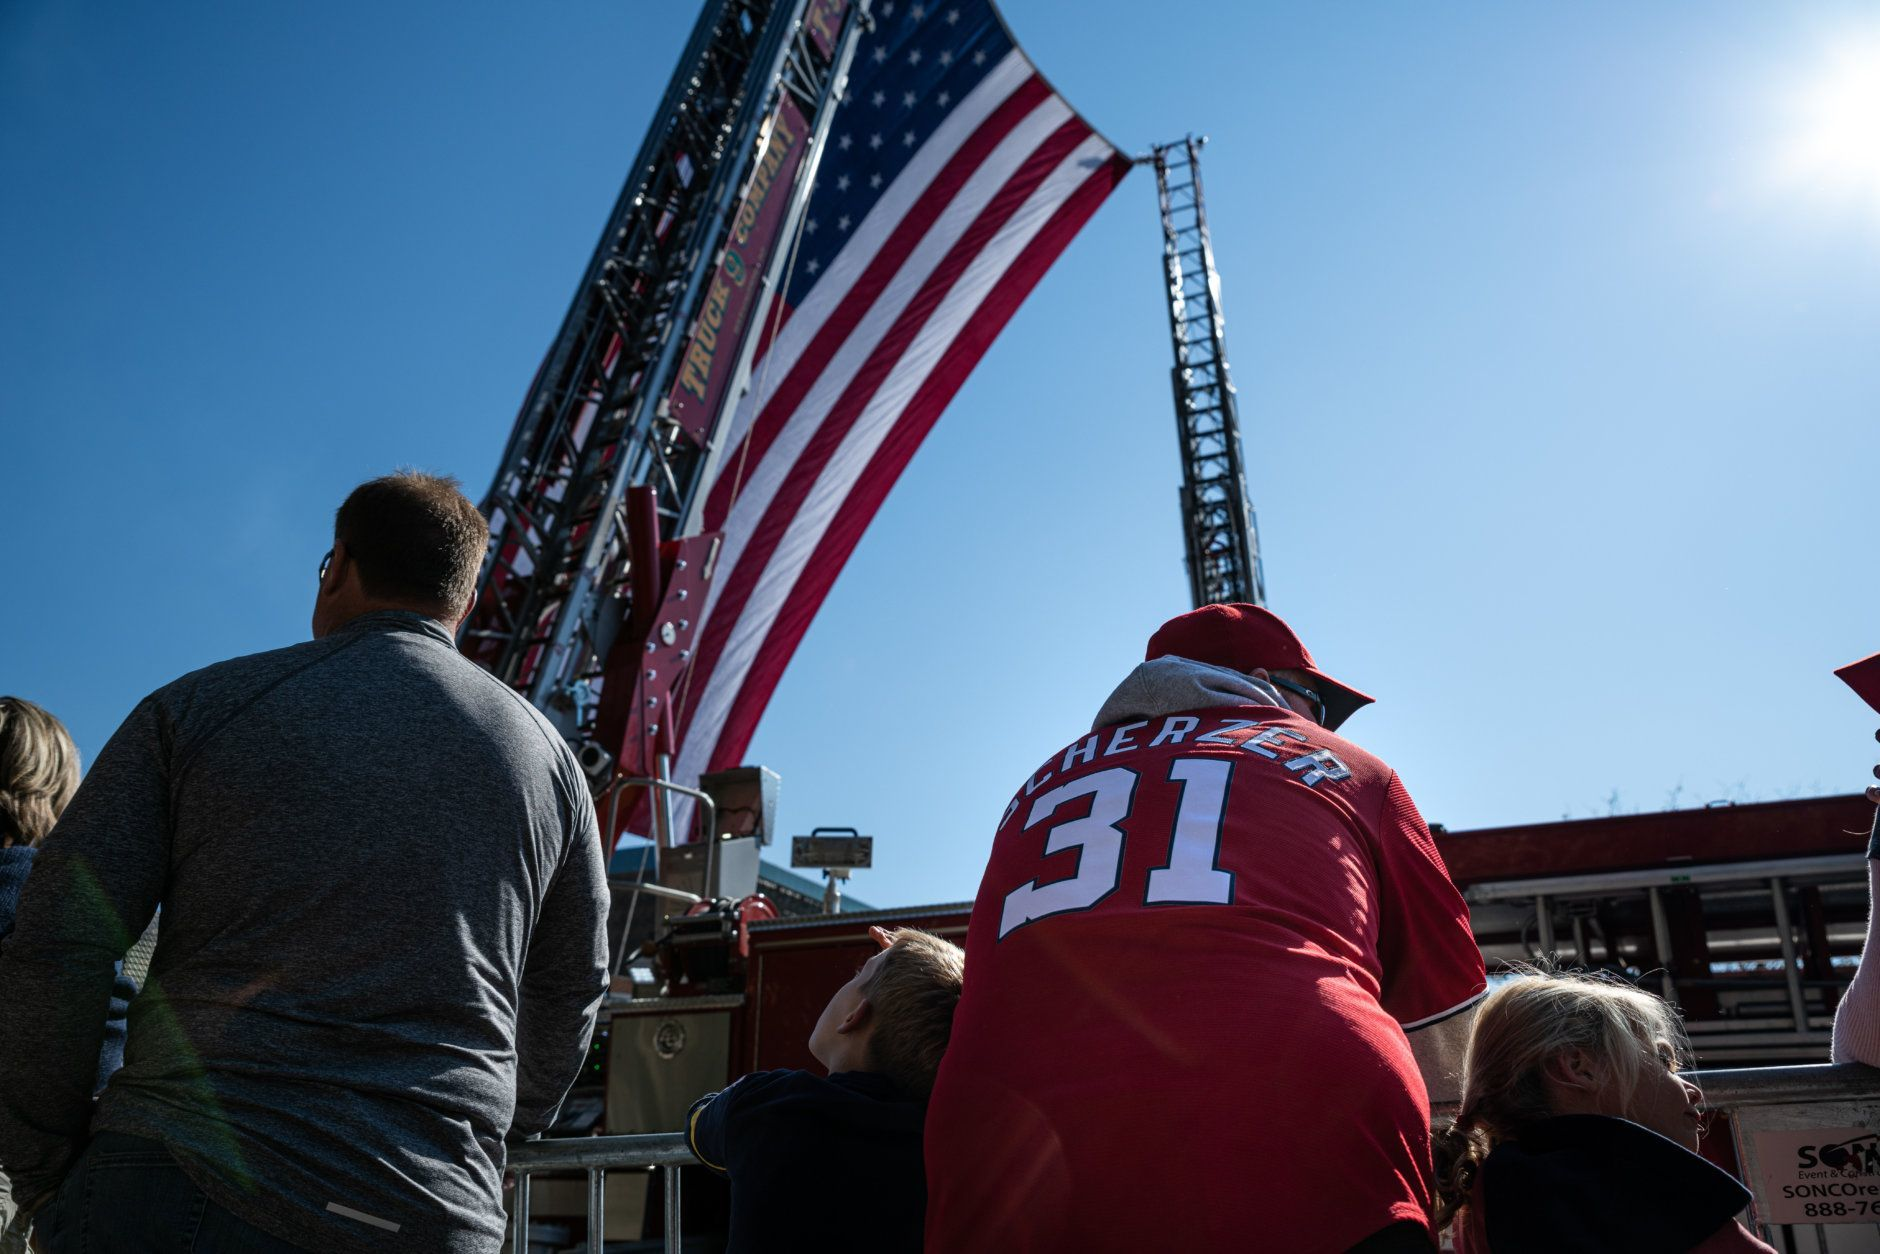 A Washington Nationals fan awaits the start of the parade on Constitution Avenue, beneath a behemoth American flag hoisted by two D.C. fire engines. (WTOP/Alejandro Alvarez)